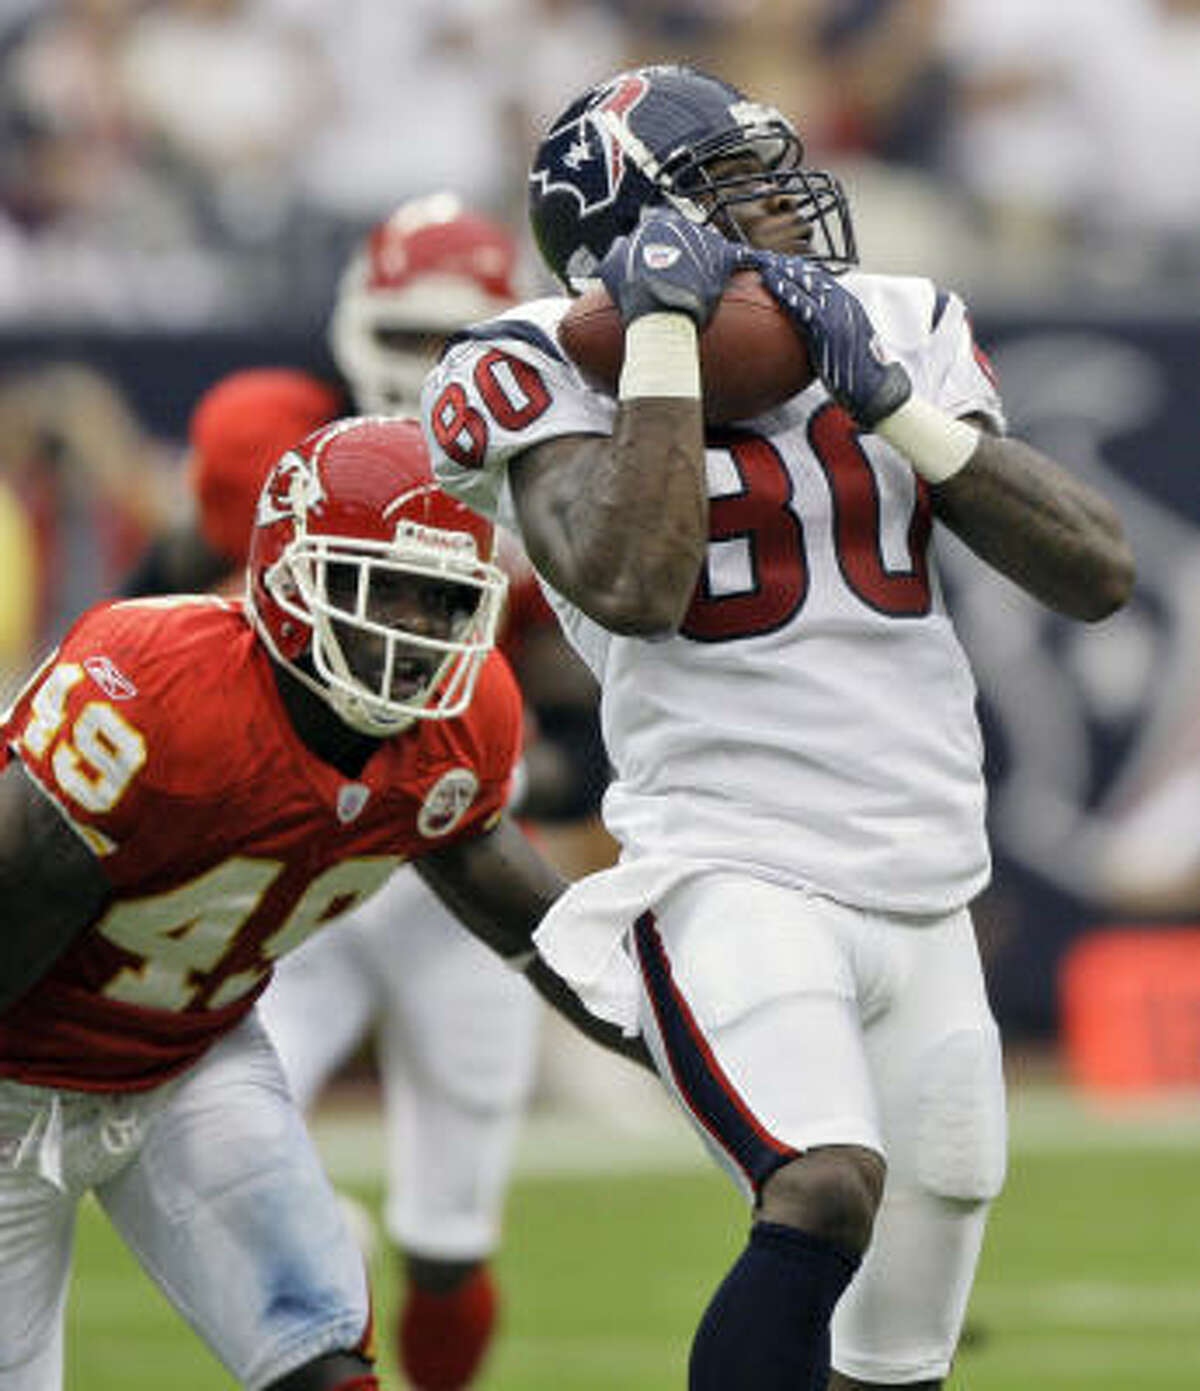 In 2007, Bernard Pollard (49) was a safety with the Chiefs trying to make a play on future teammate Andre Johnson.